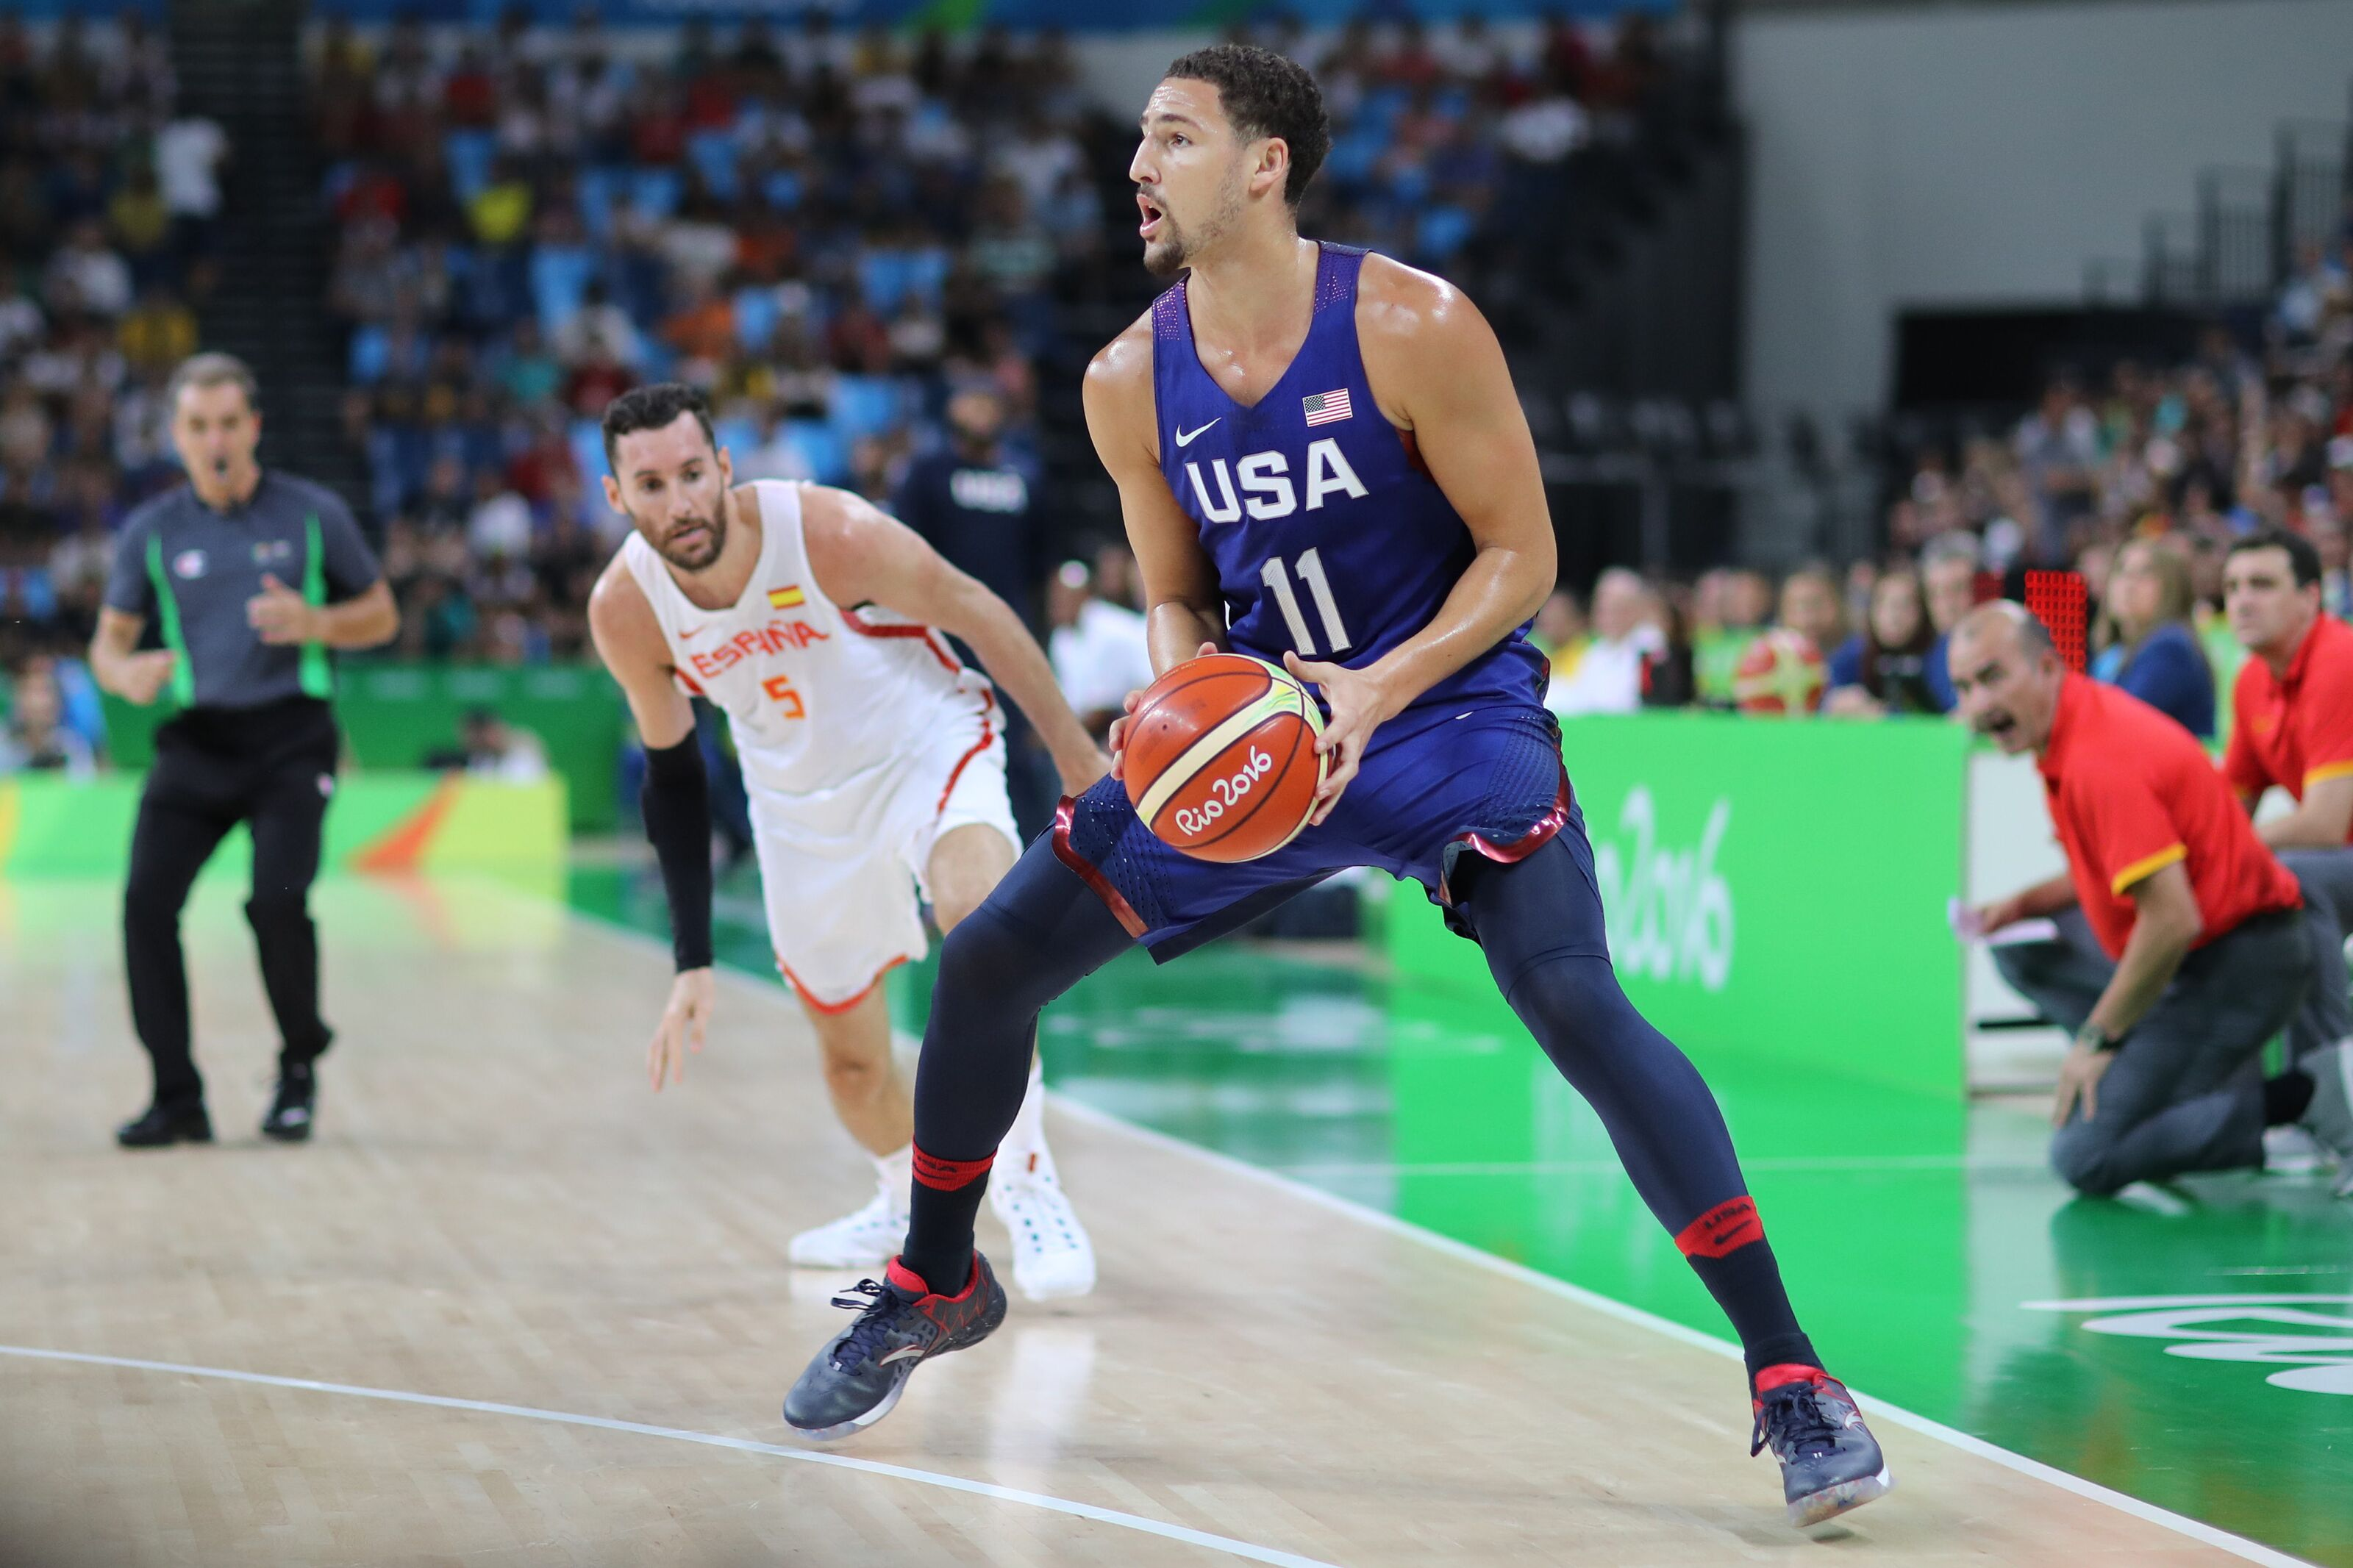 Golden State Warriors: Klay Thompson plans to play alongside Steph Curry in 2020 Olympics